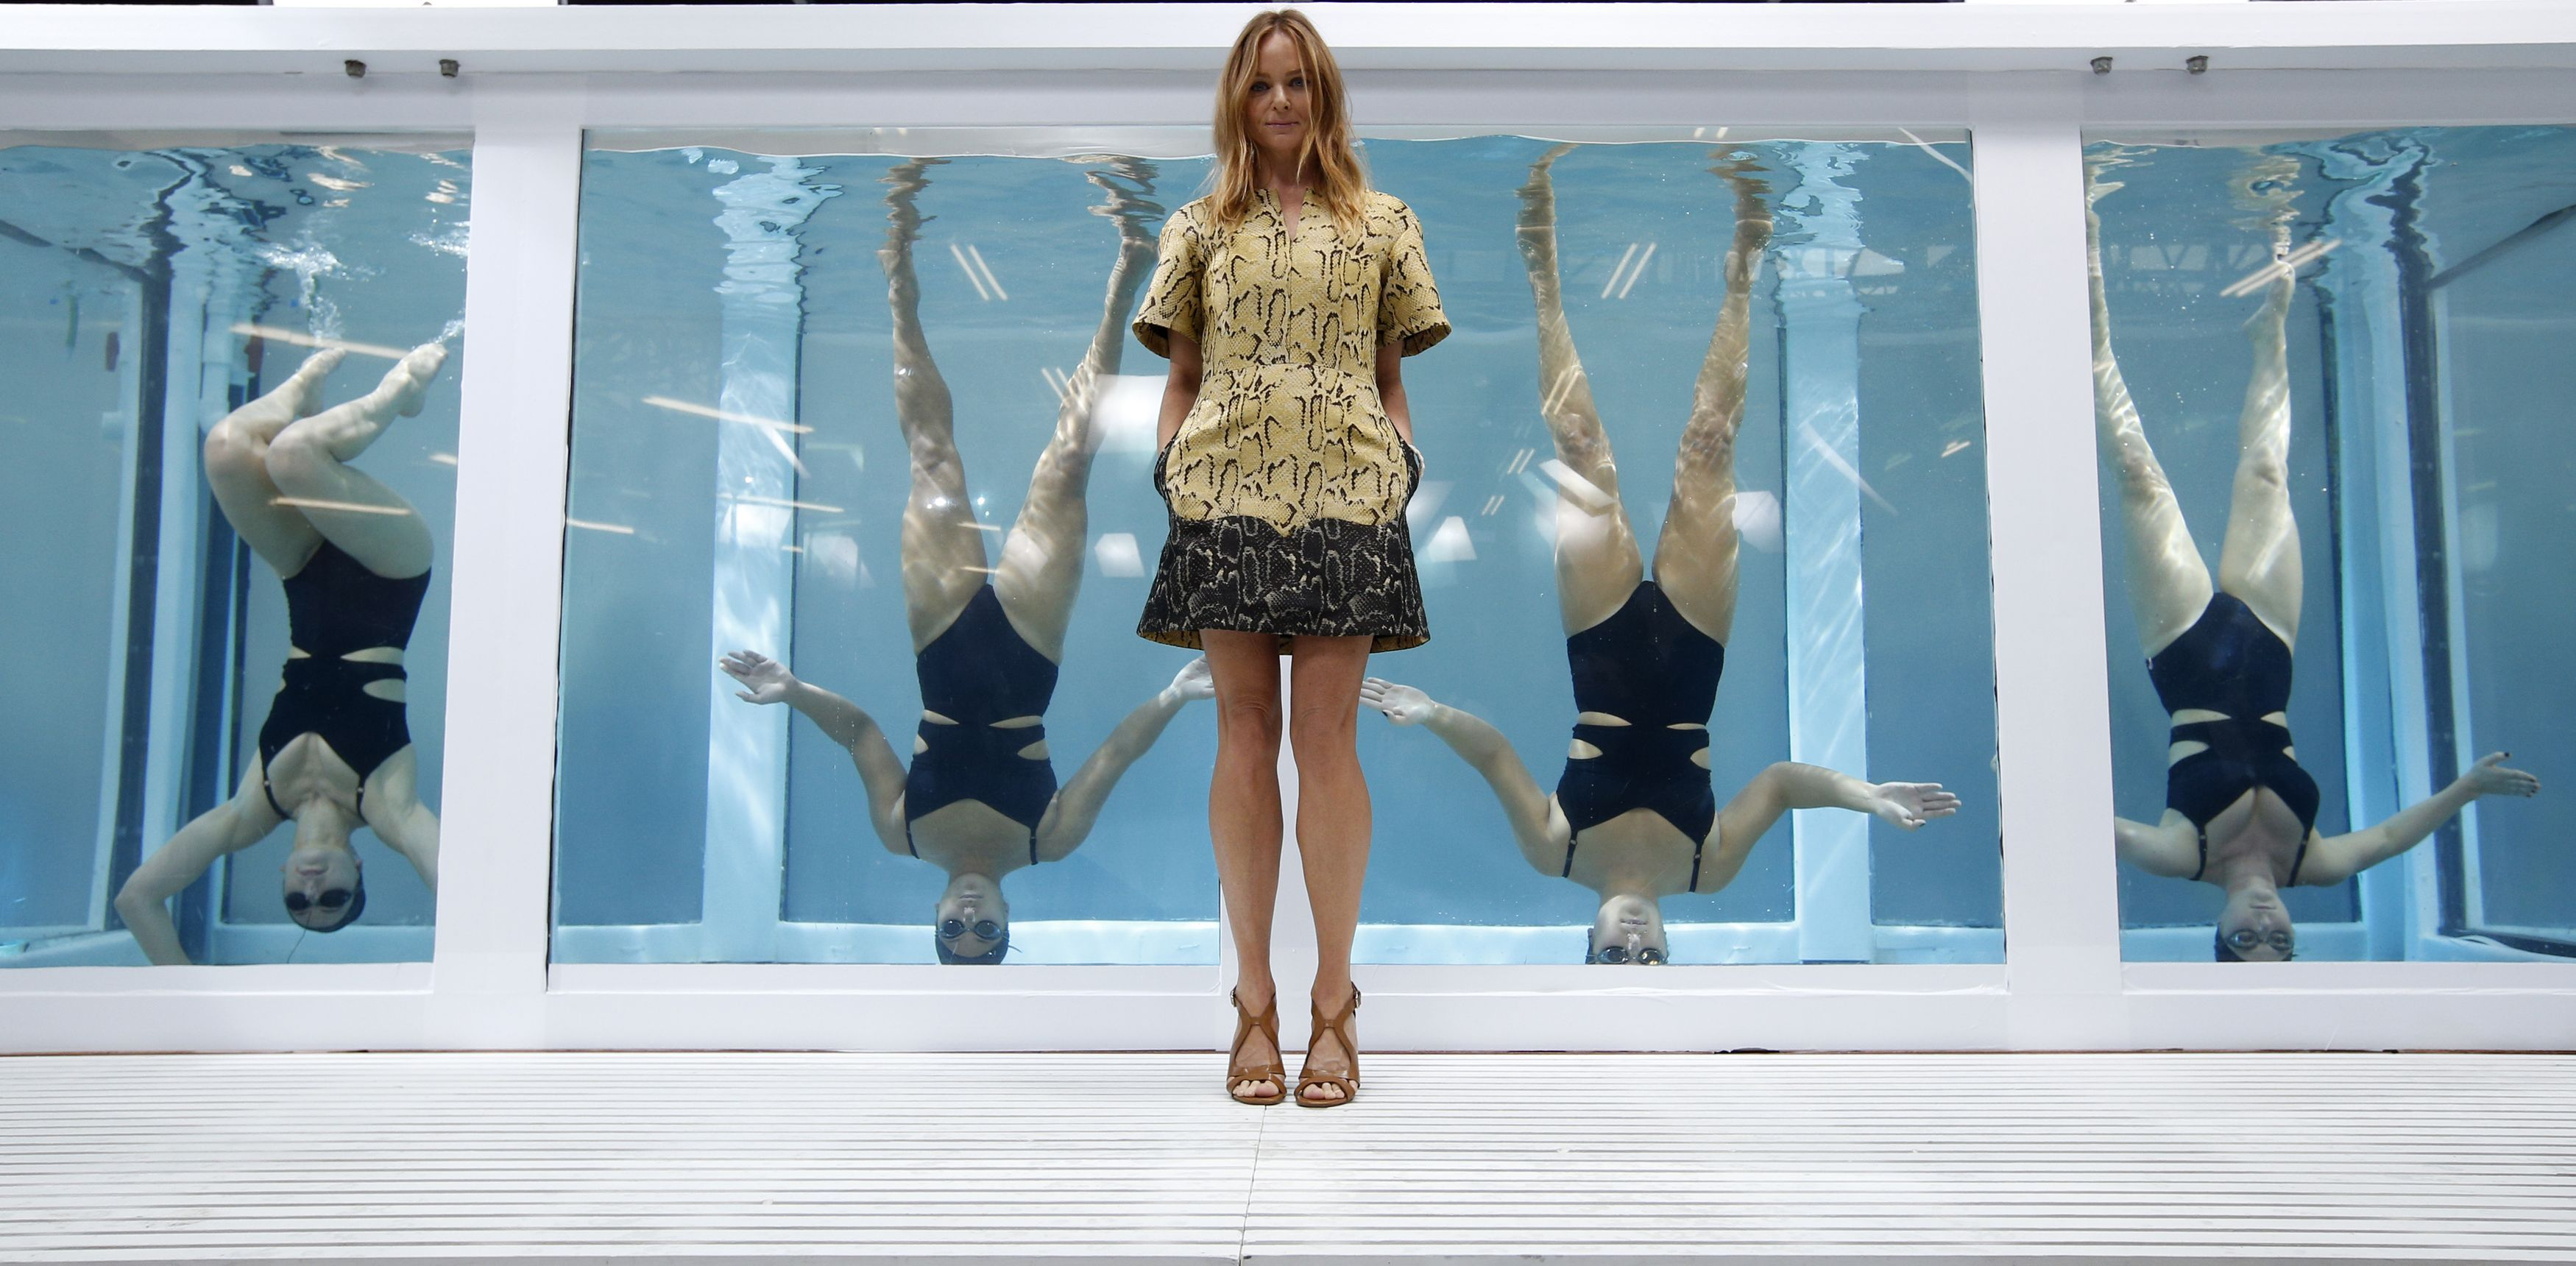 Gallery: Stella McCartney showcases her Adidas collection at London Fashion Week 2013